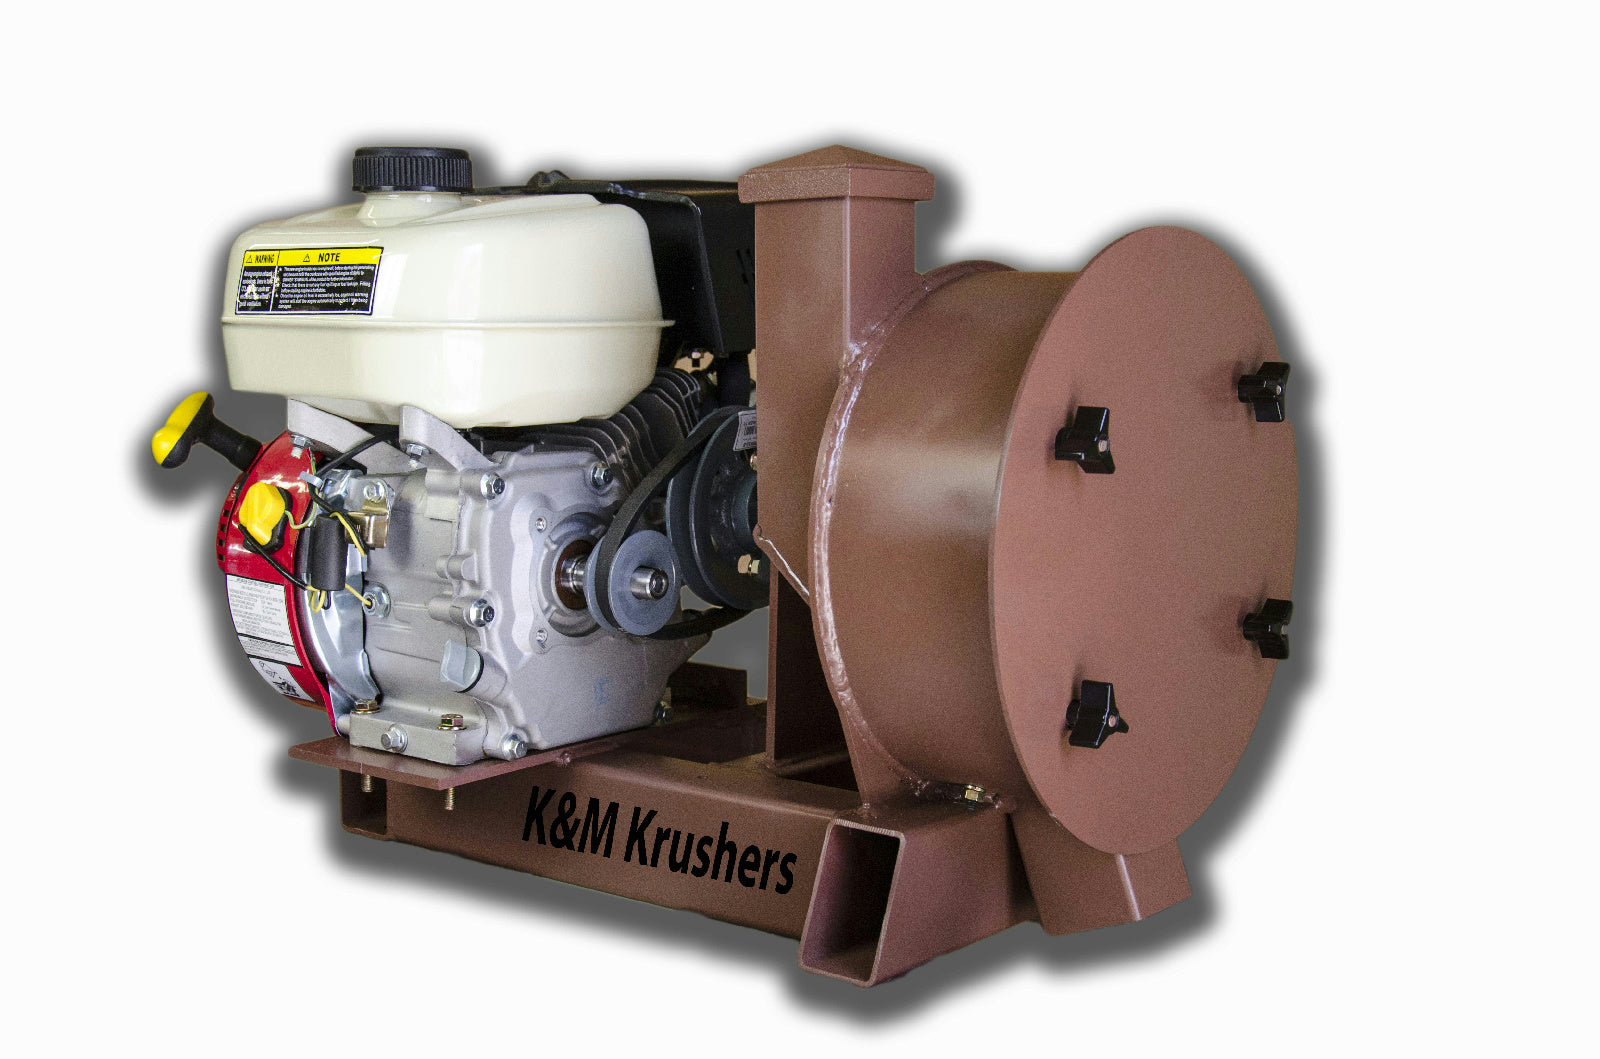 "K & M Krusher - Rock/Ore Crusher 5.5HP Honda Gas Motor 11"" Drum 2-1/2"" Infeed-Rockwell #58 Hammers"